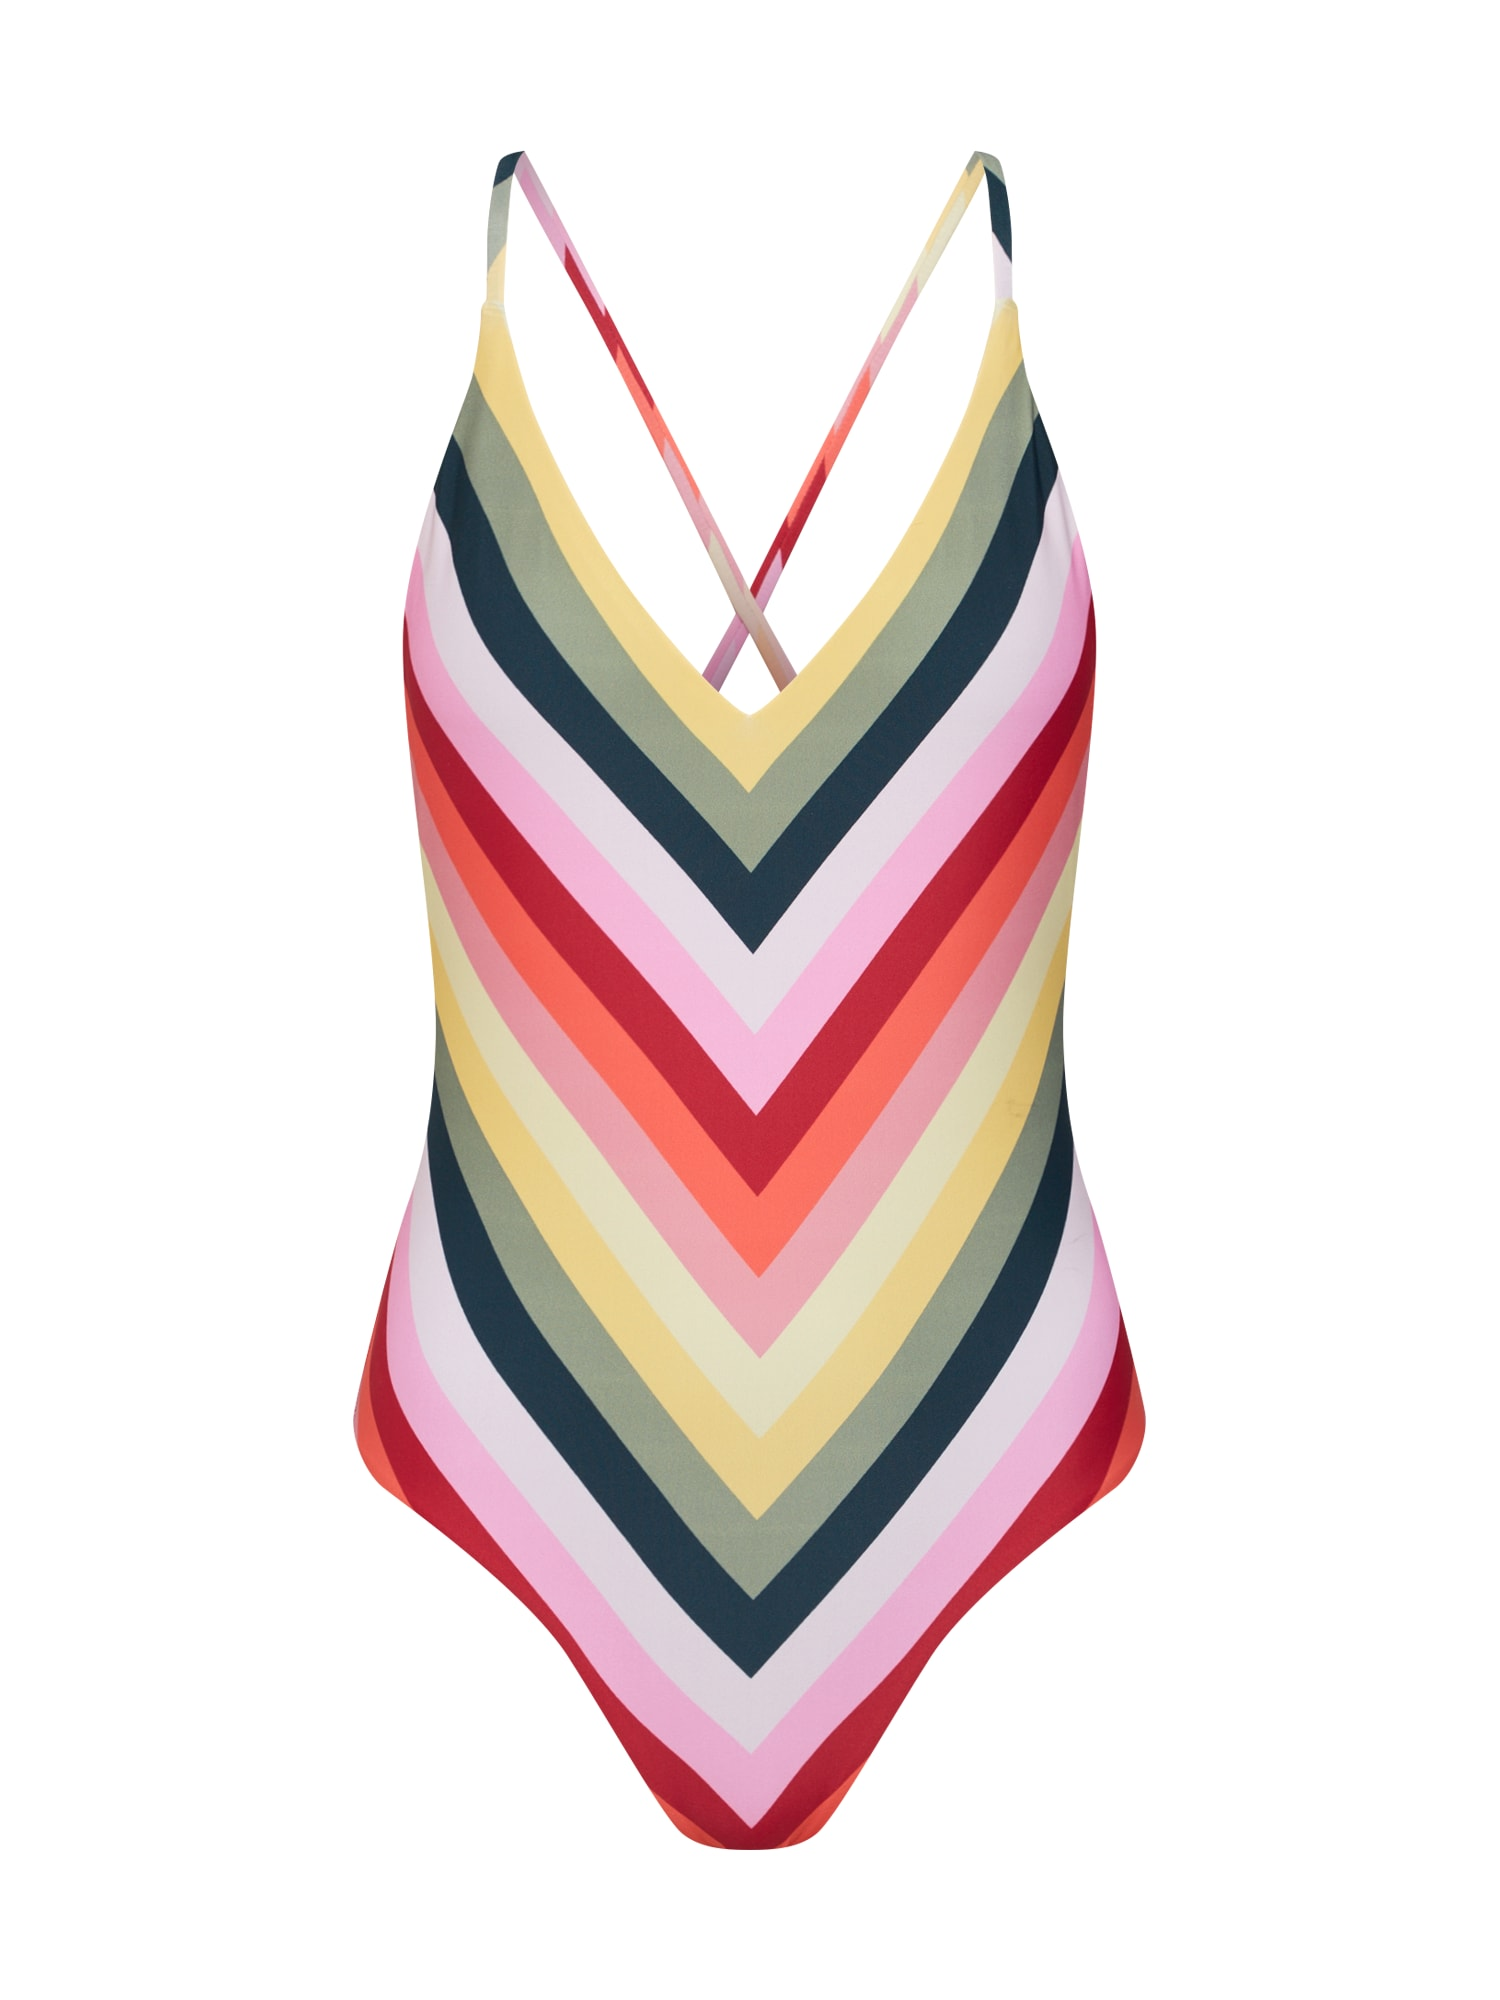 Plavky S HAPPY STRIPES ONE PIECE  mix barev CATWALK JUNKIE